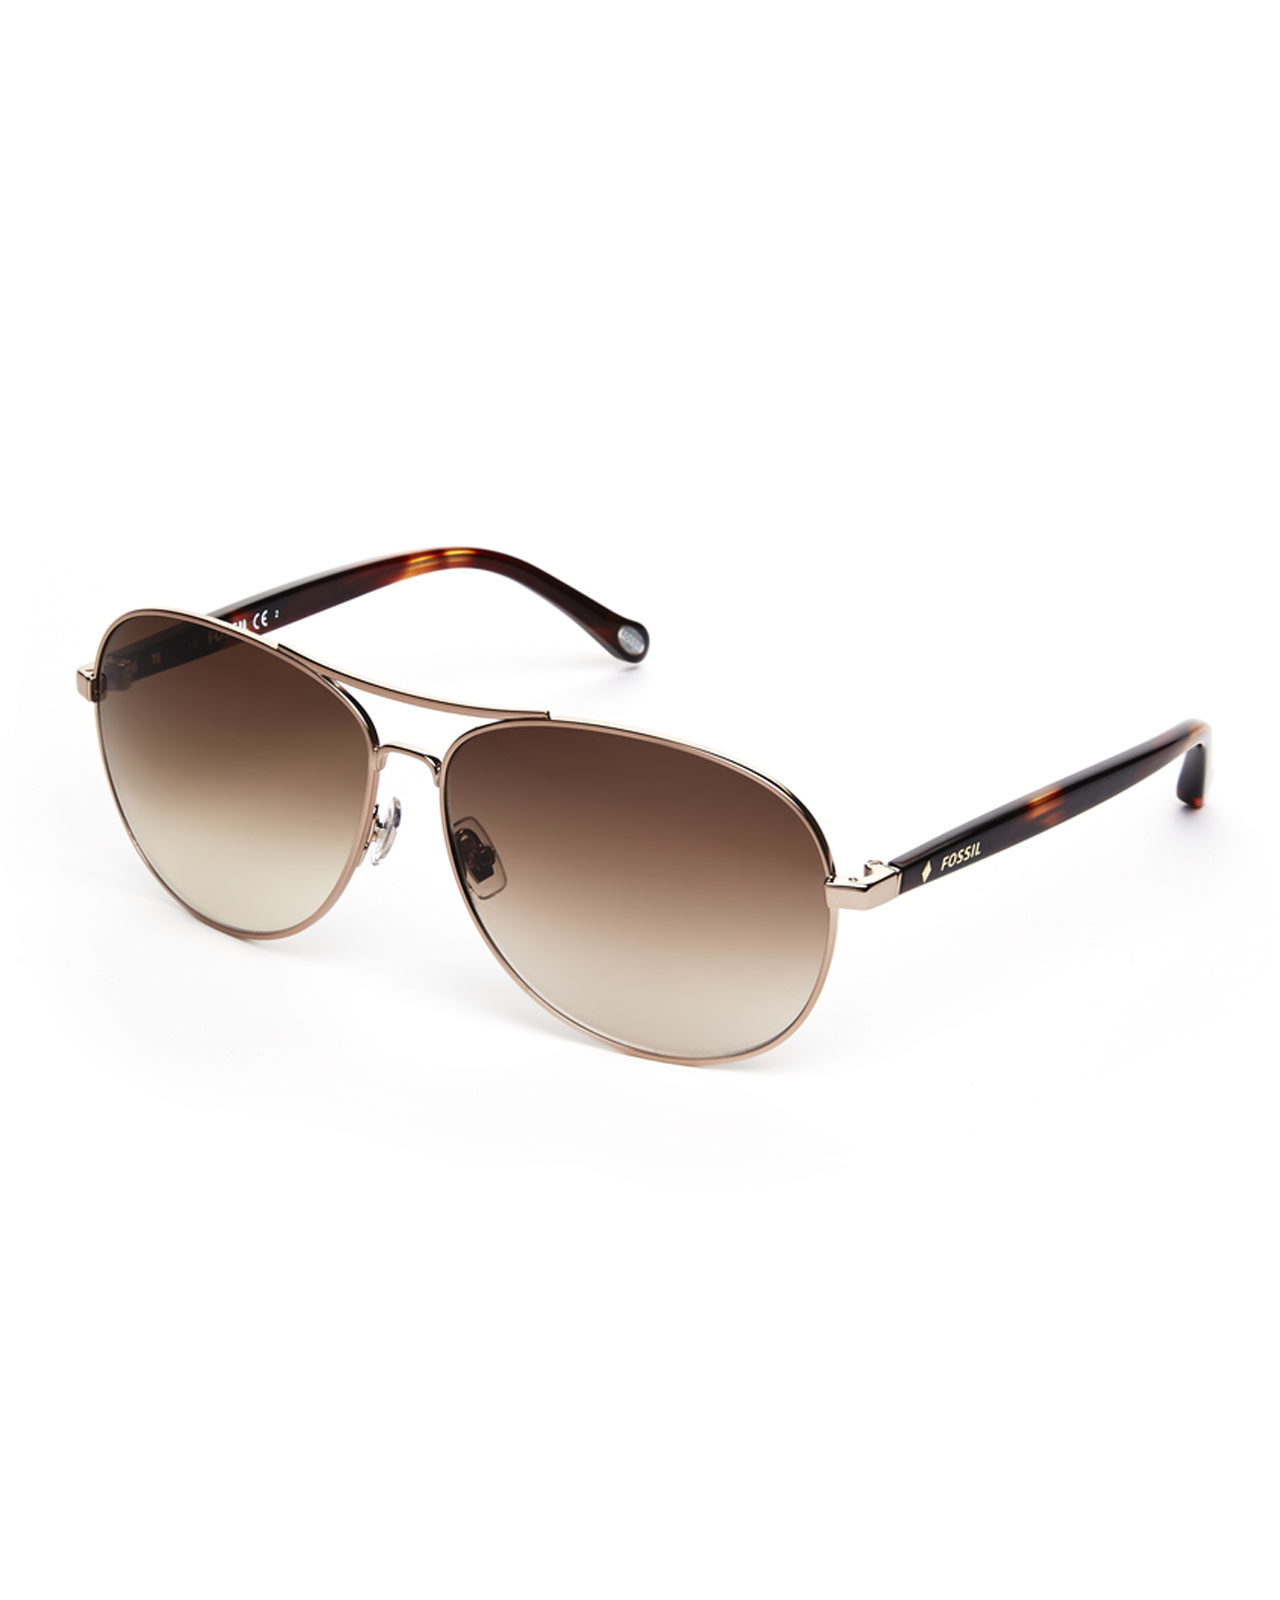 beceacc41f Fossil Almond 1005 S Aviator Sunglasses in Metallic - Lyst